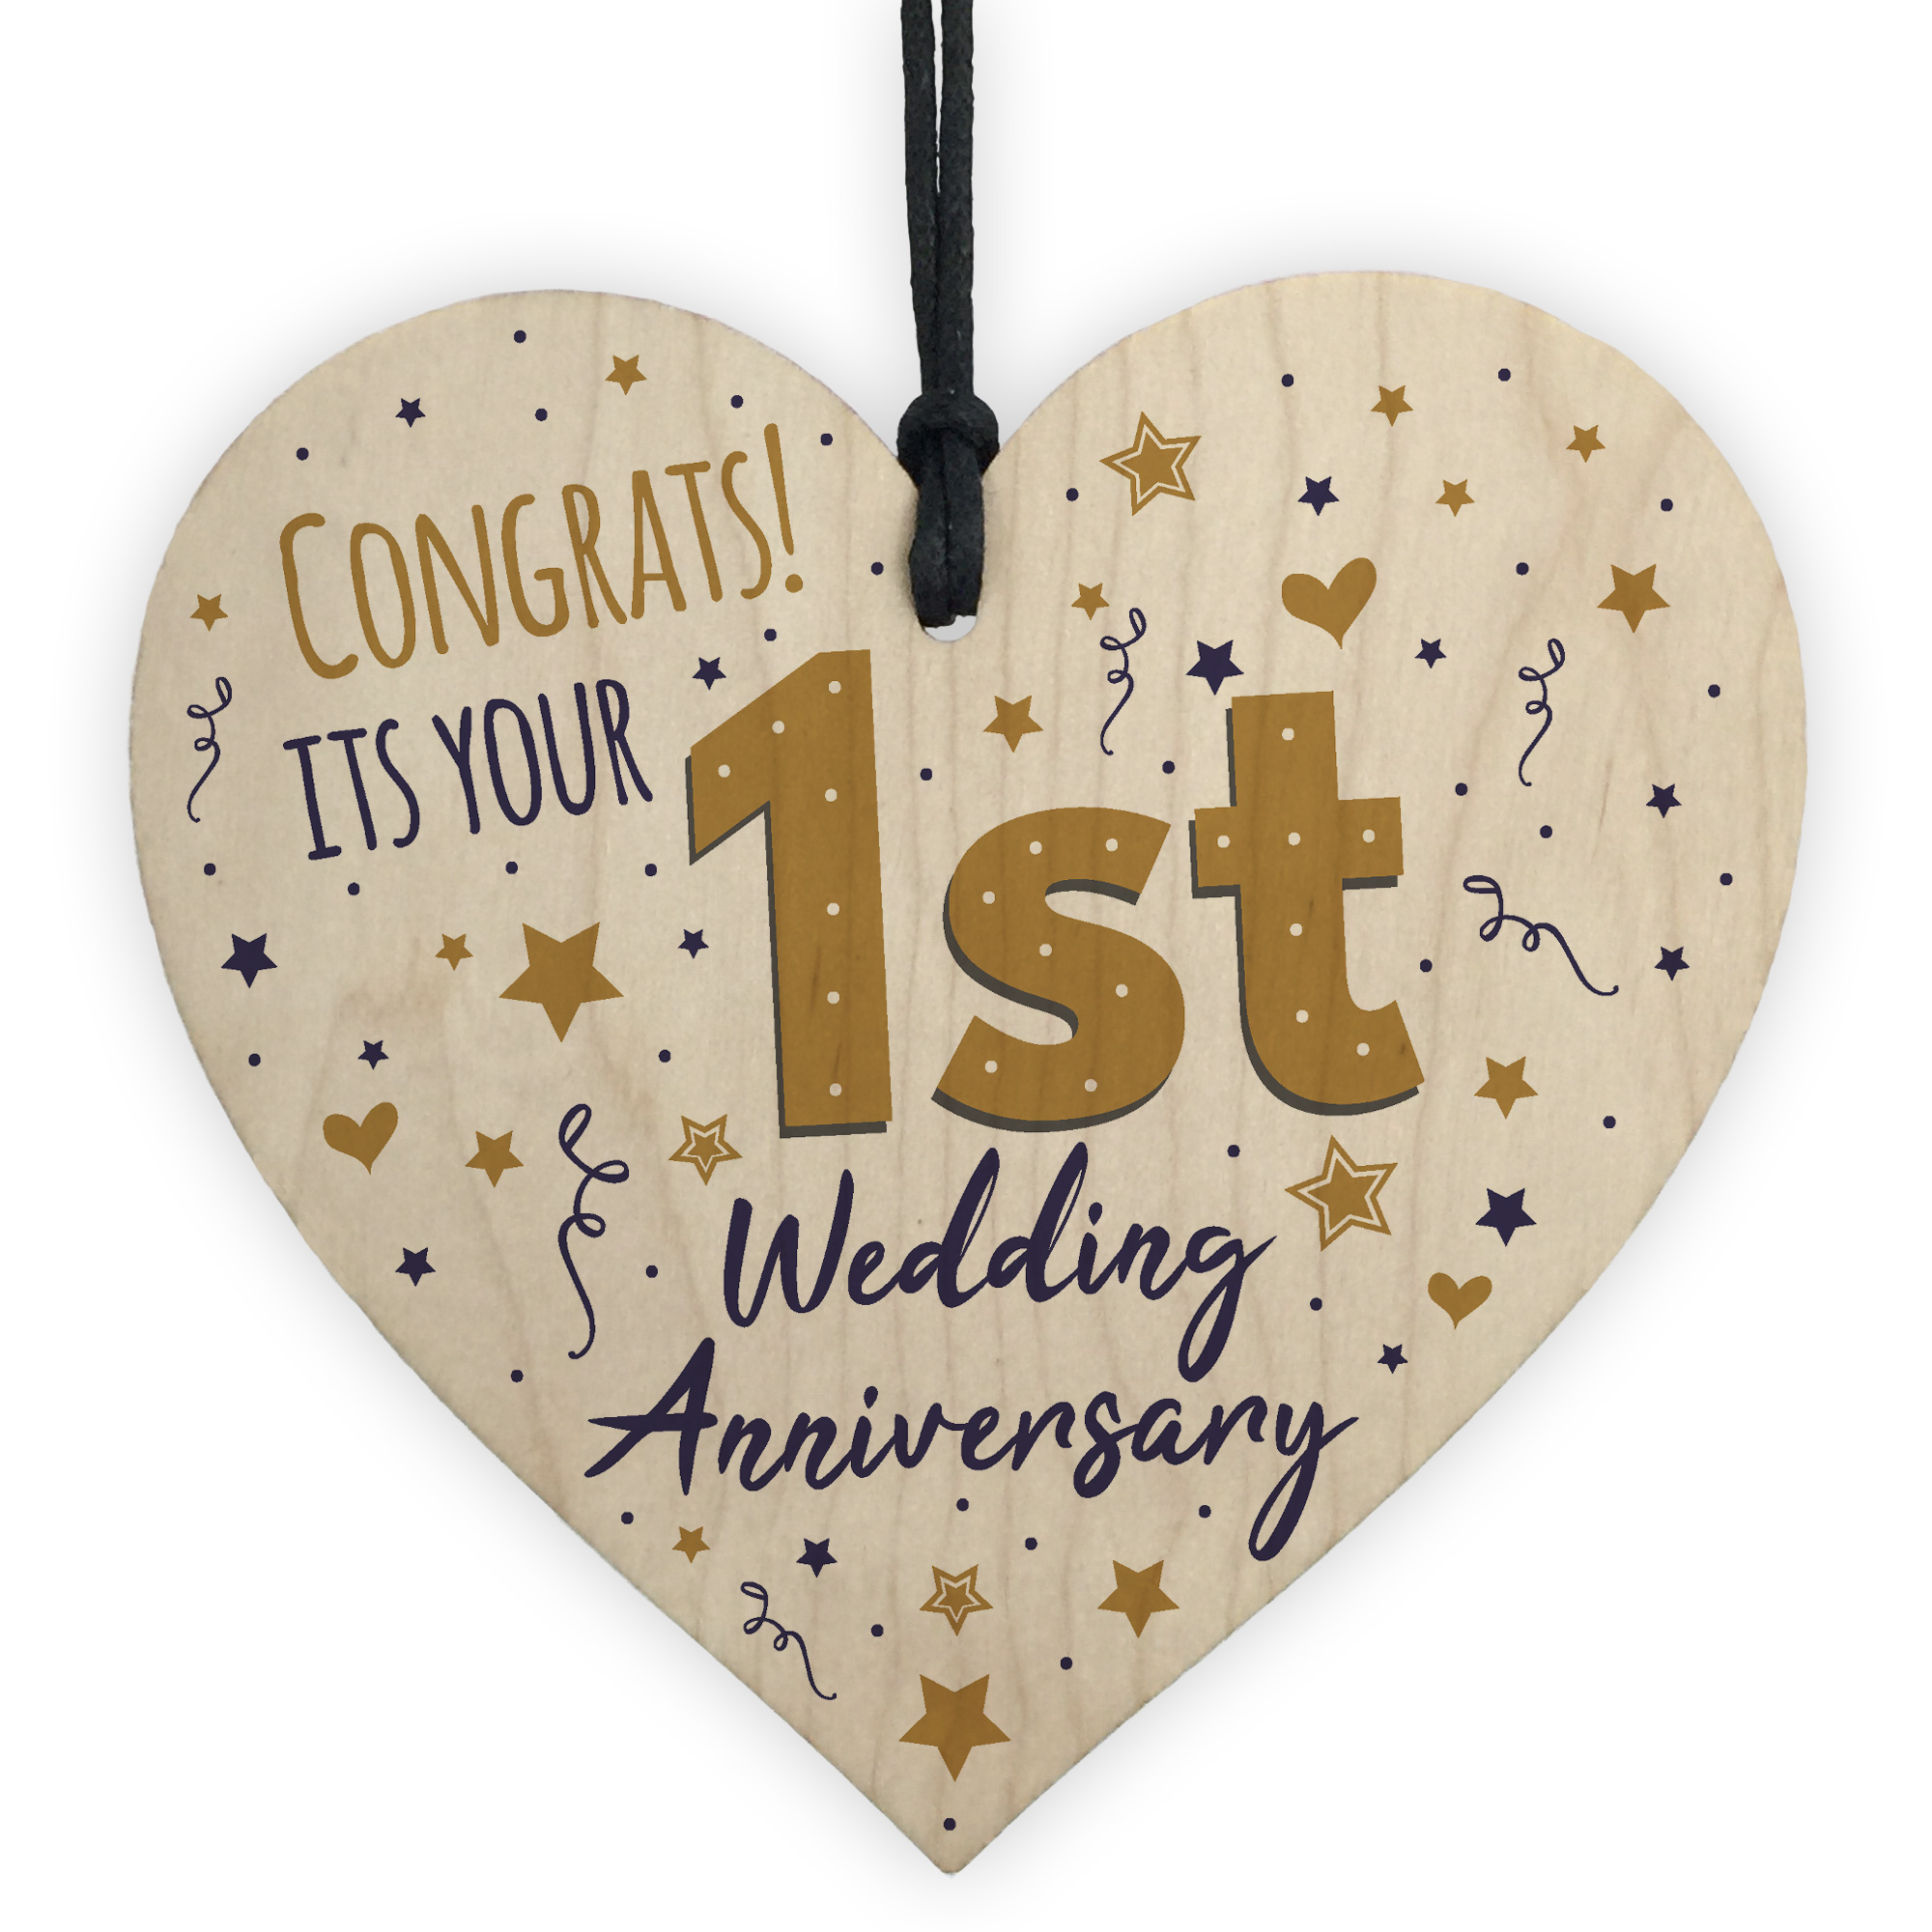 First Wedding Anniversary Gifts For Her: Congratulations First Wedding Anniversary Gift Heart 1st